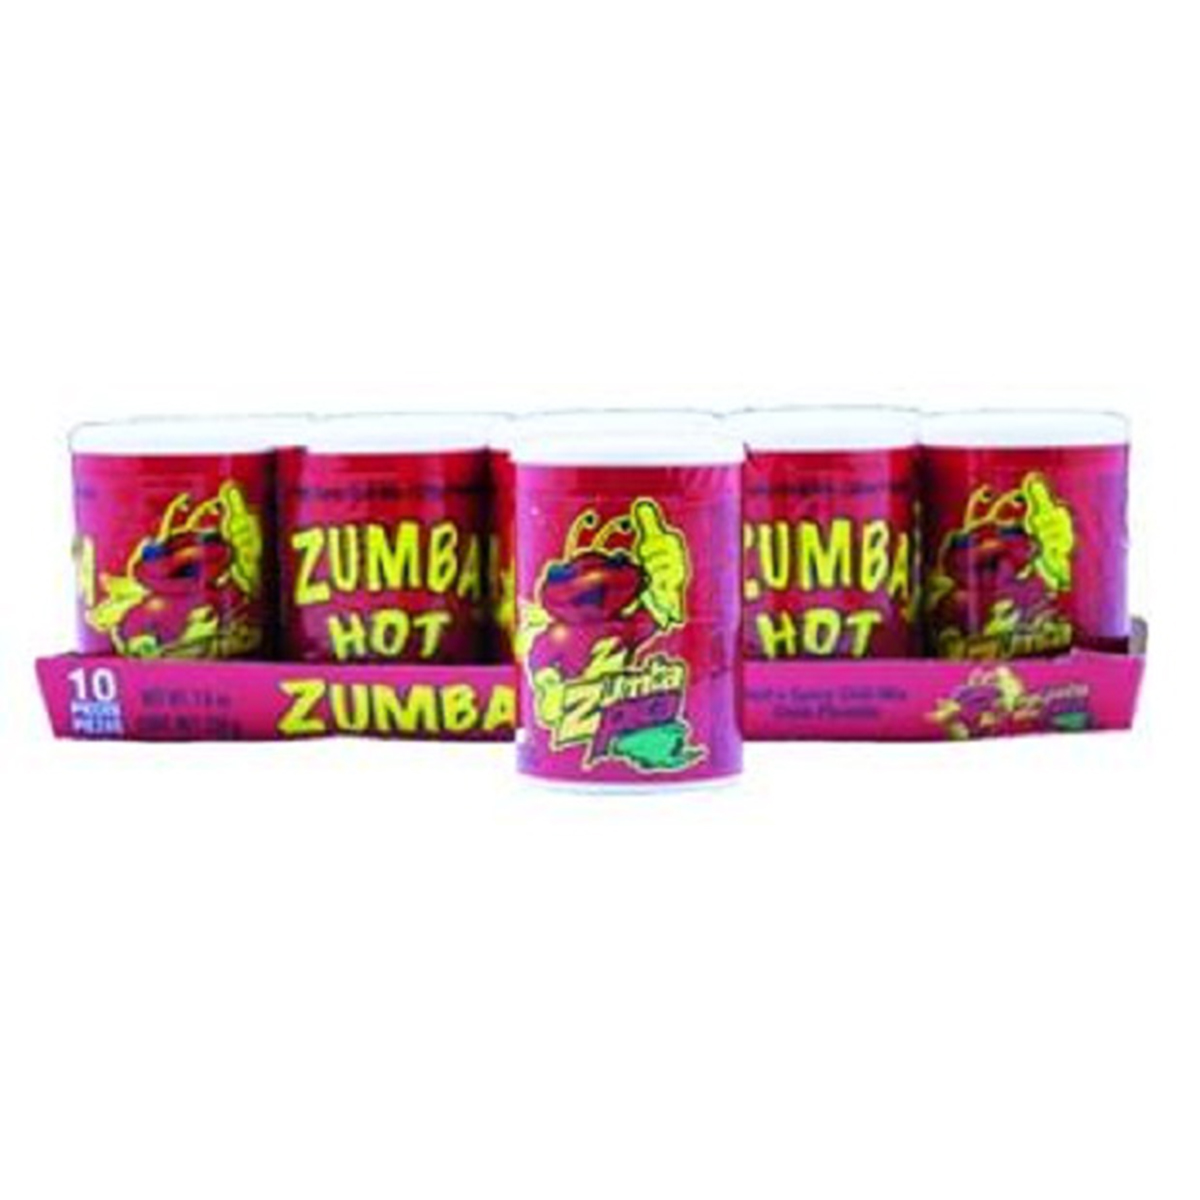 Product Of Zumba, Hot N Spicy, Count 10 - Sugar Candy / Grab Varieties & Flavors